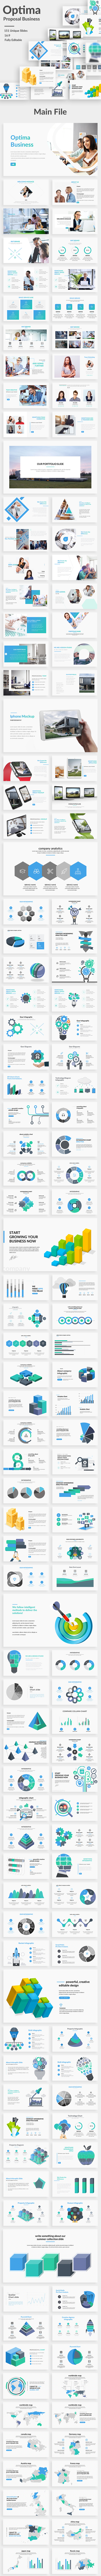 Optima Proposal Business Powerpoint Template